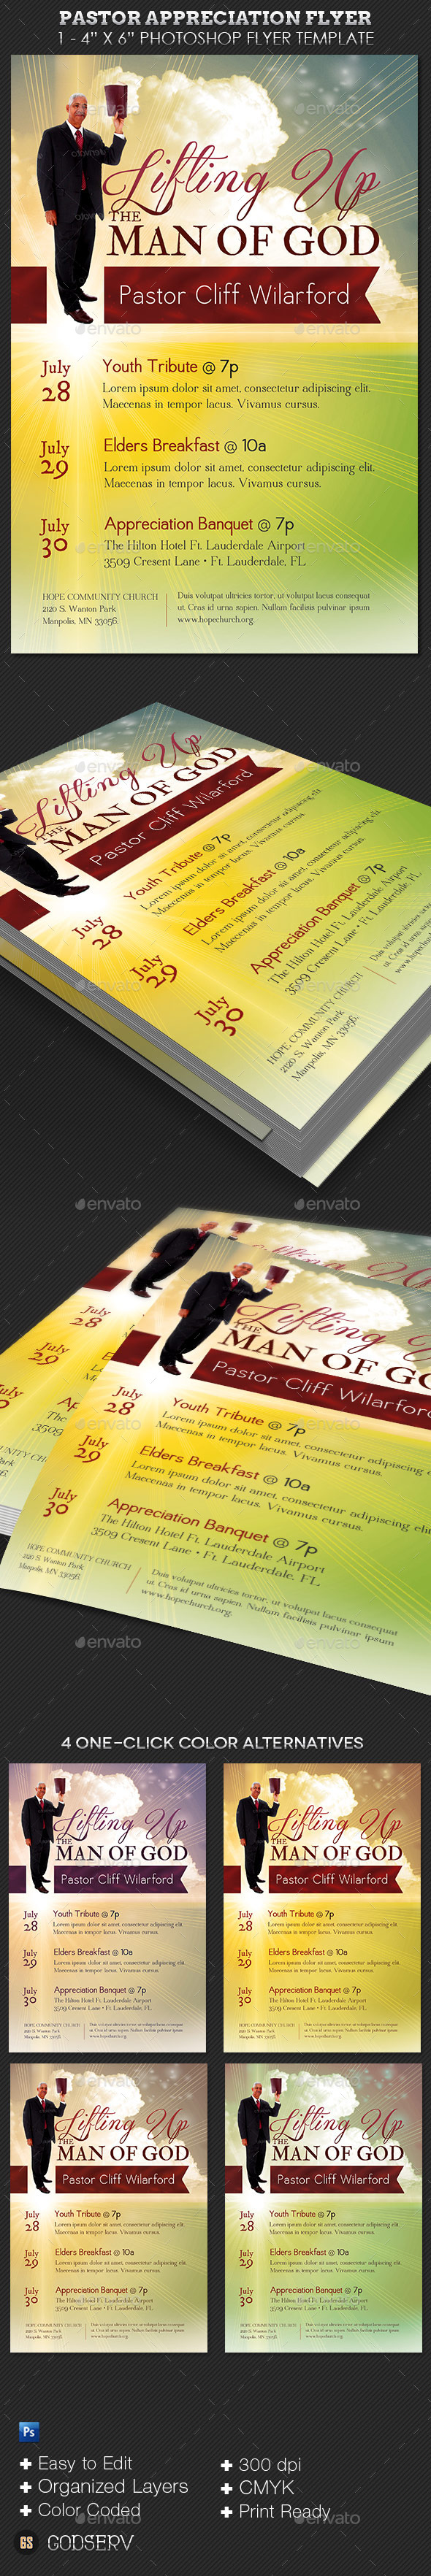 wine and art mixer flyer graphicstank pastor appreciation church flyer template